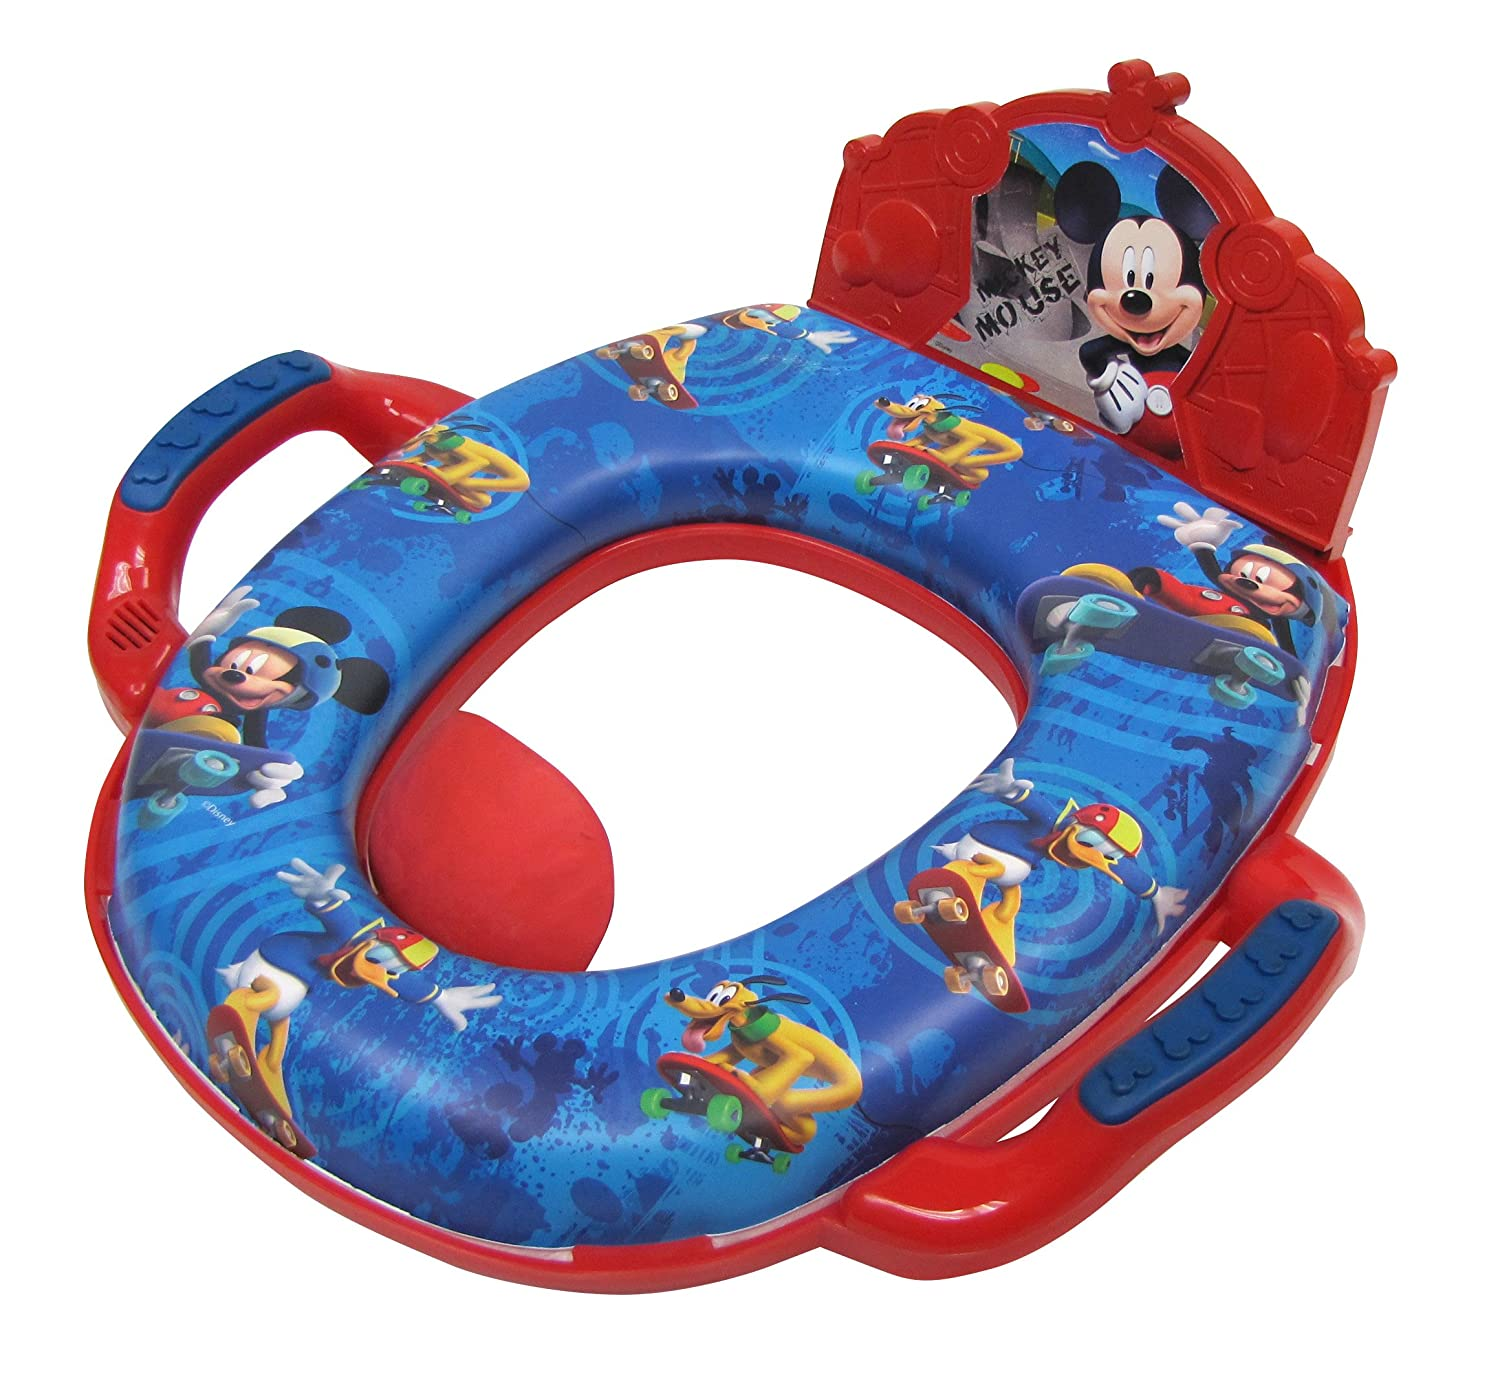 Amazon.com : Disney Mickey Mouse Deluxe Potty, Red : Baby